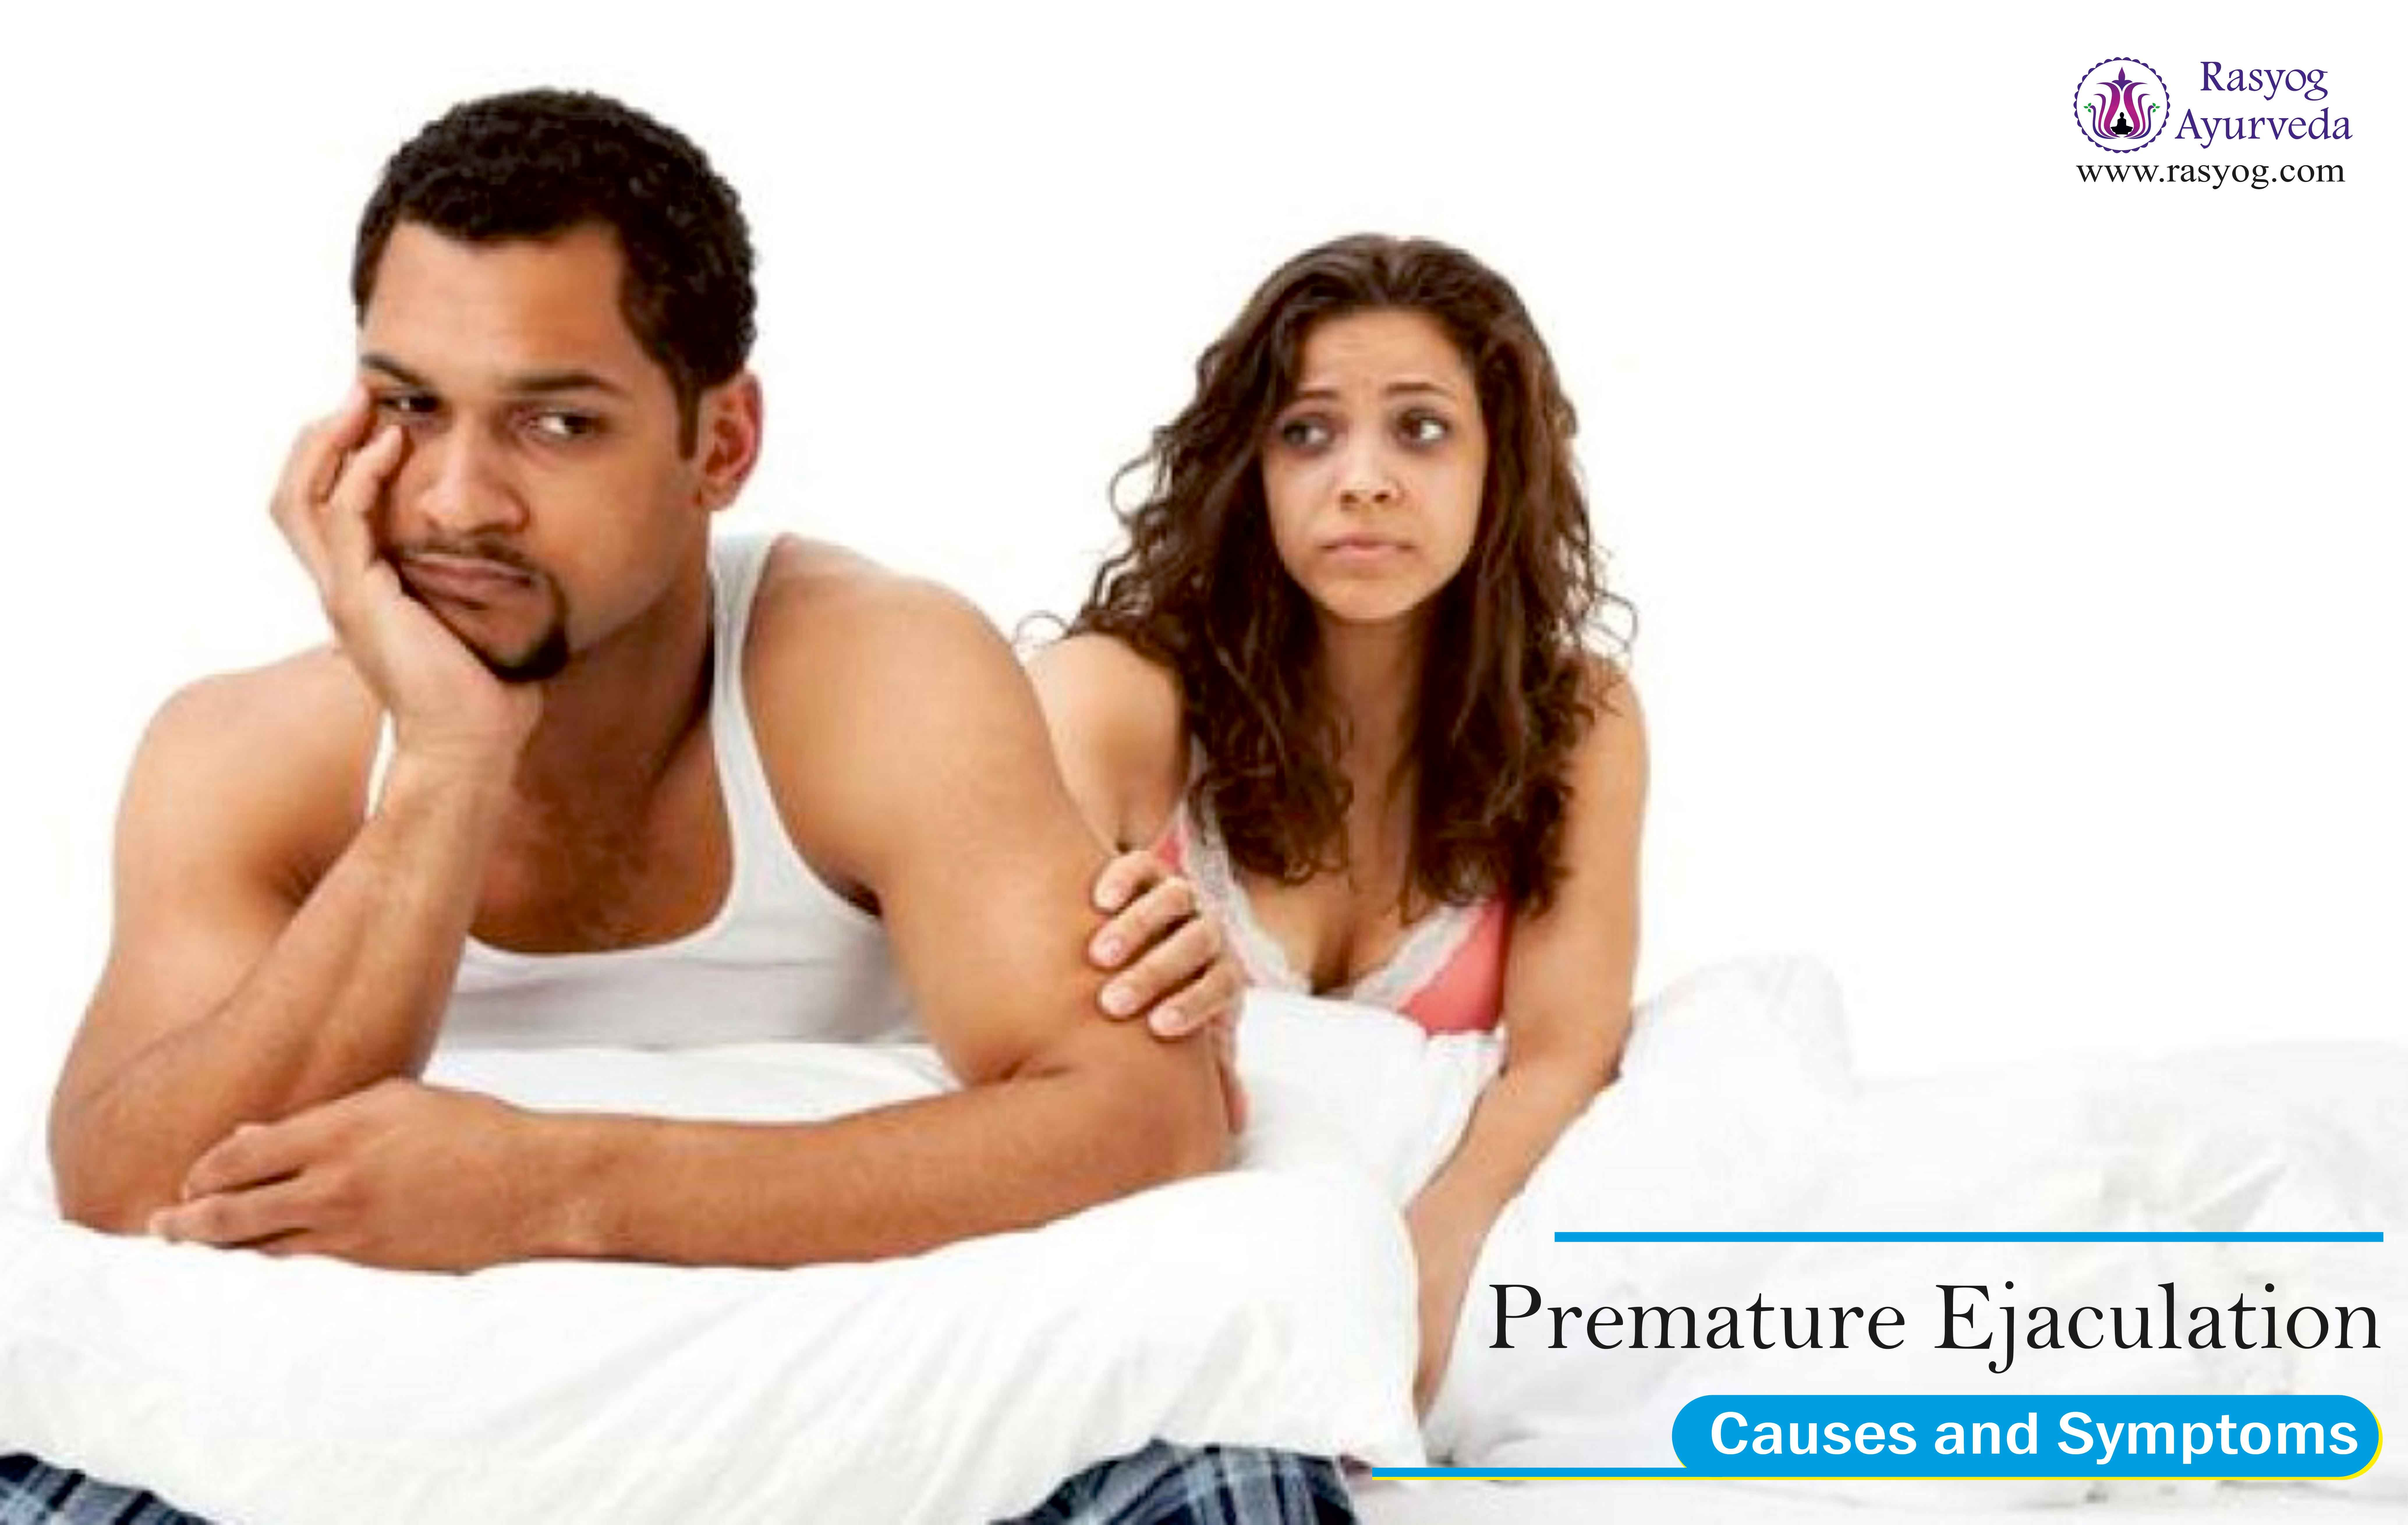 Suffering from premature ejaculation